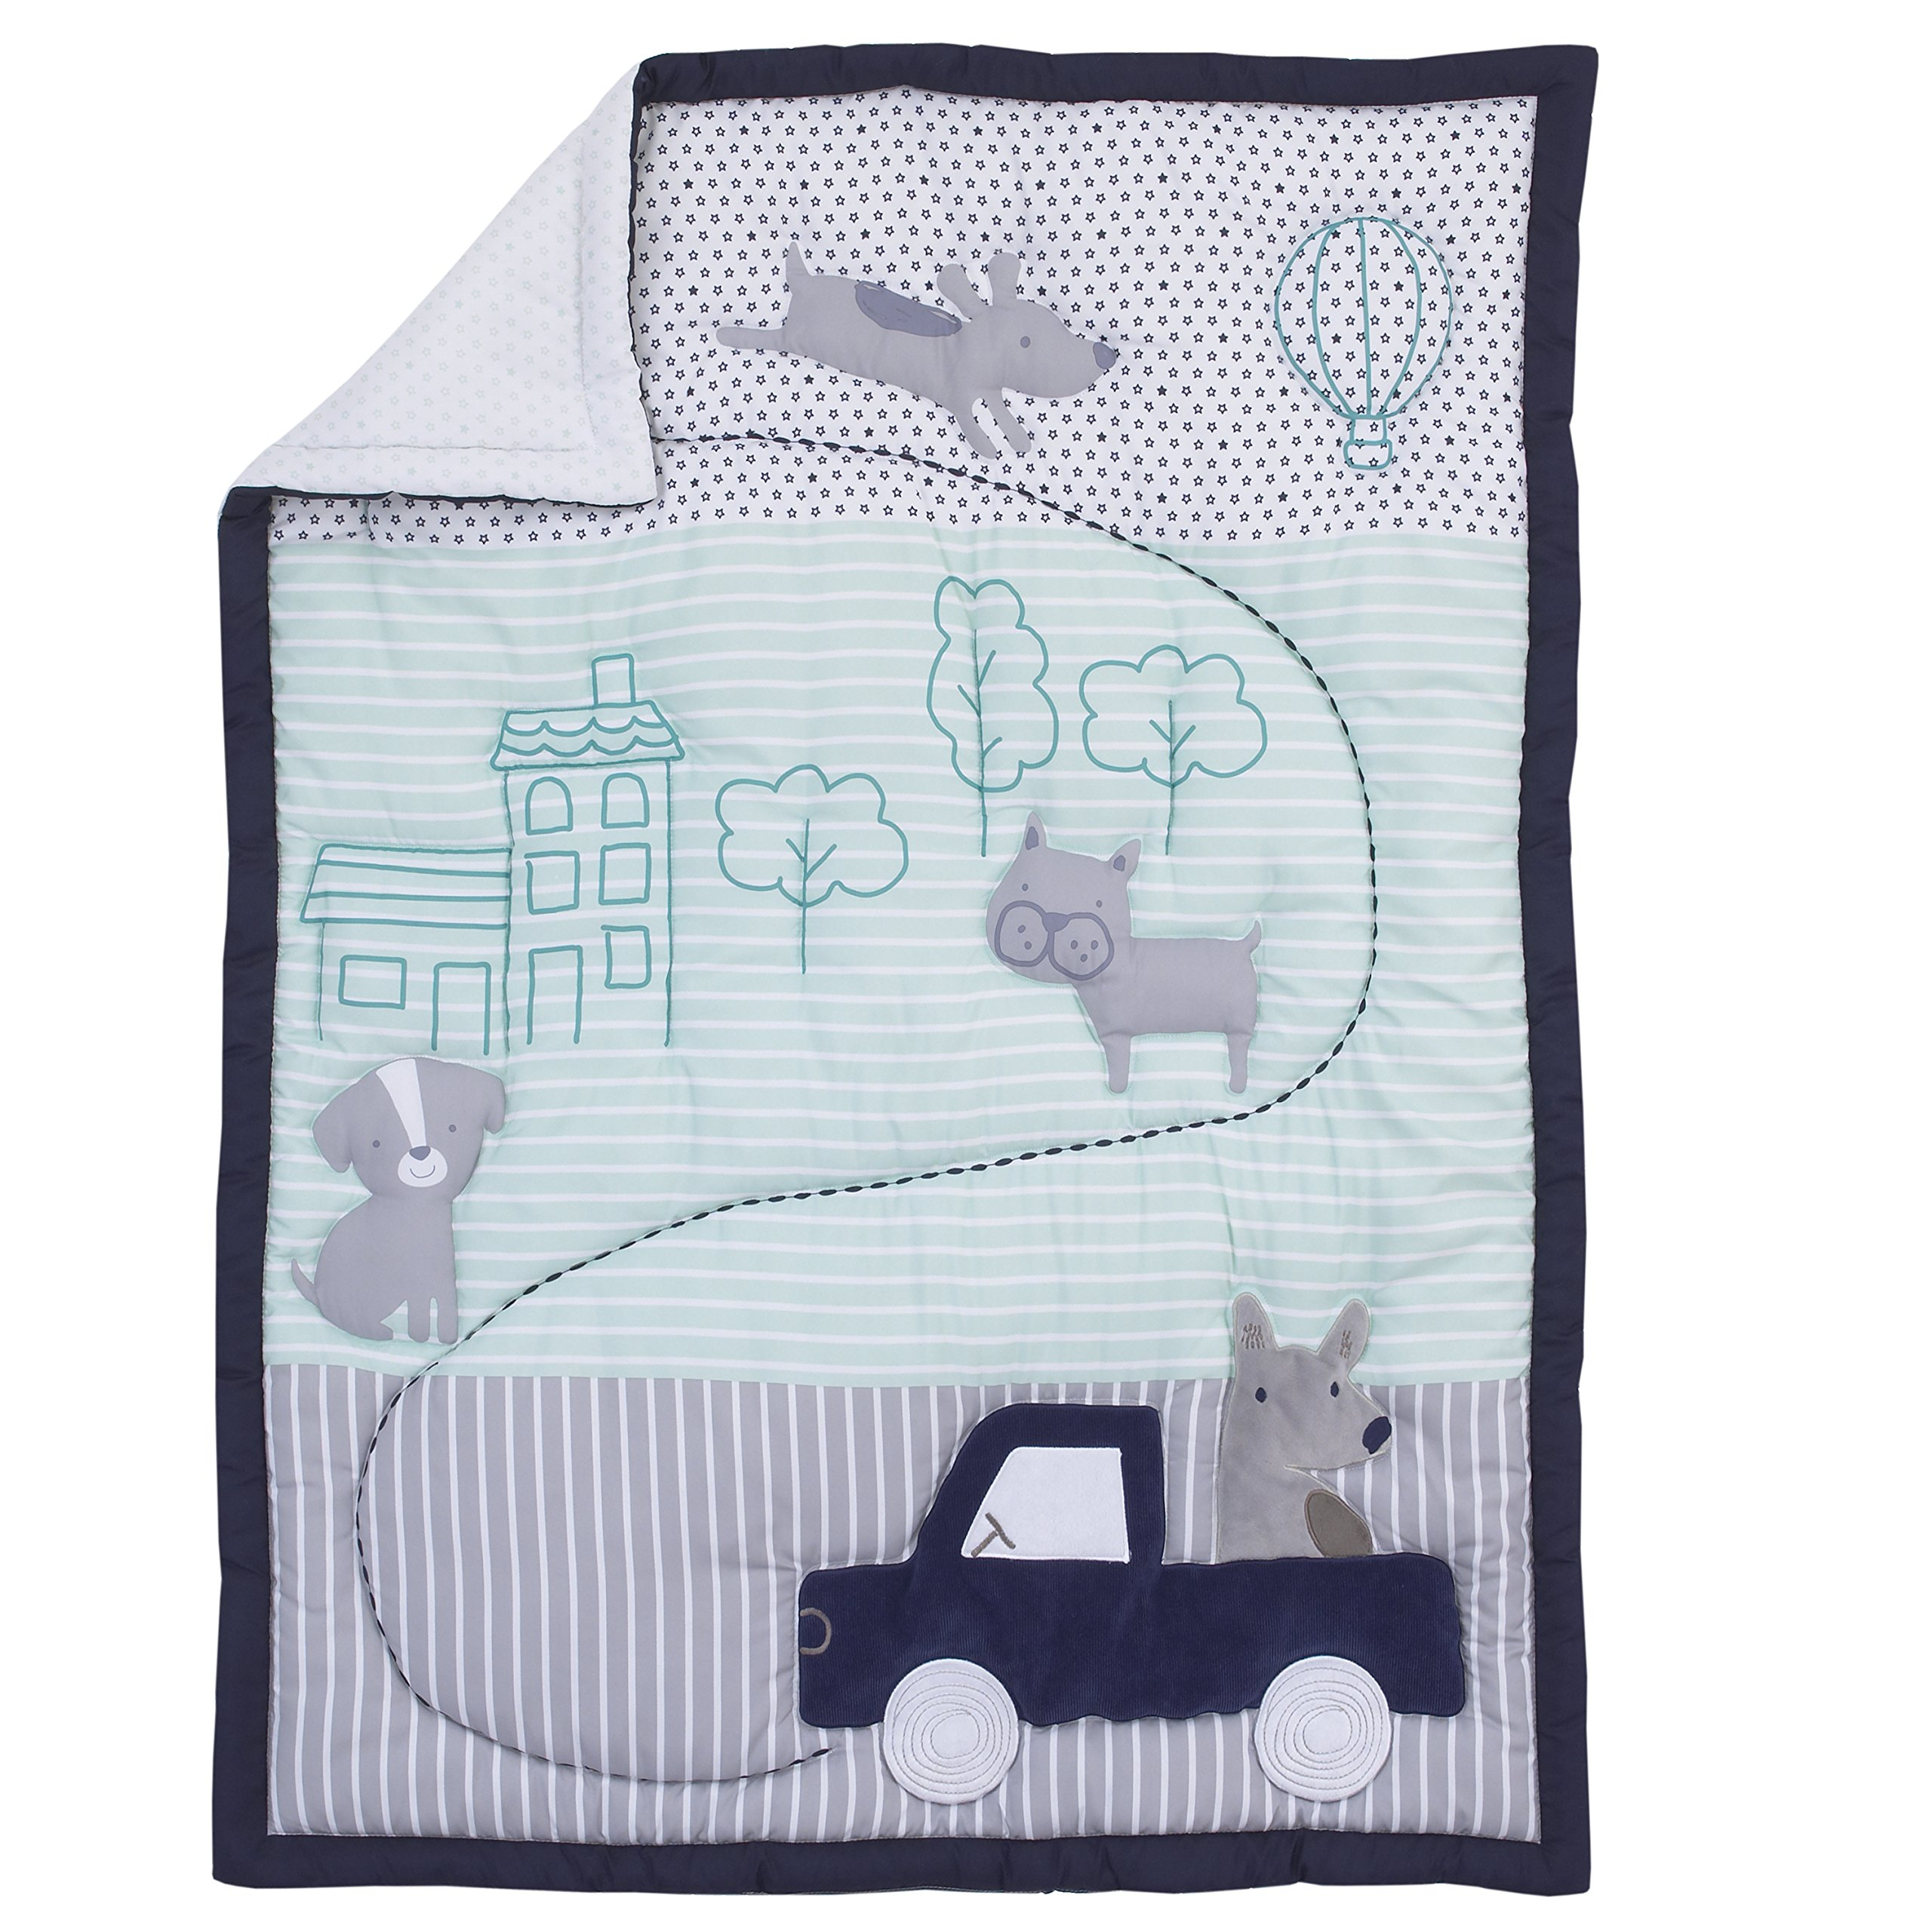 3 Piece Grey Navy Blue Aqua Boys Cars Crib Bedding Set, Newborn Animal Themed Nursery Bed Set Infant Child Gray Dogs Cats House Trees Blanket Comforter Bold Border Stripe Pattern, Polyester Cotton